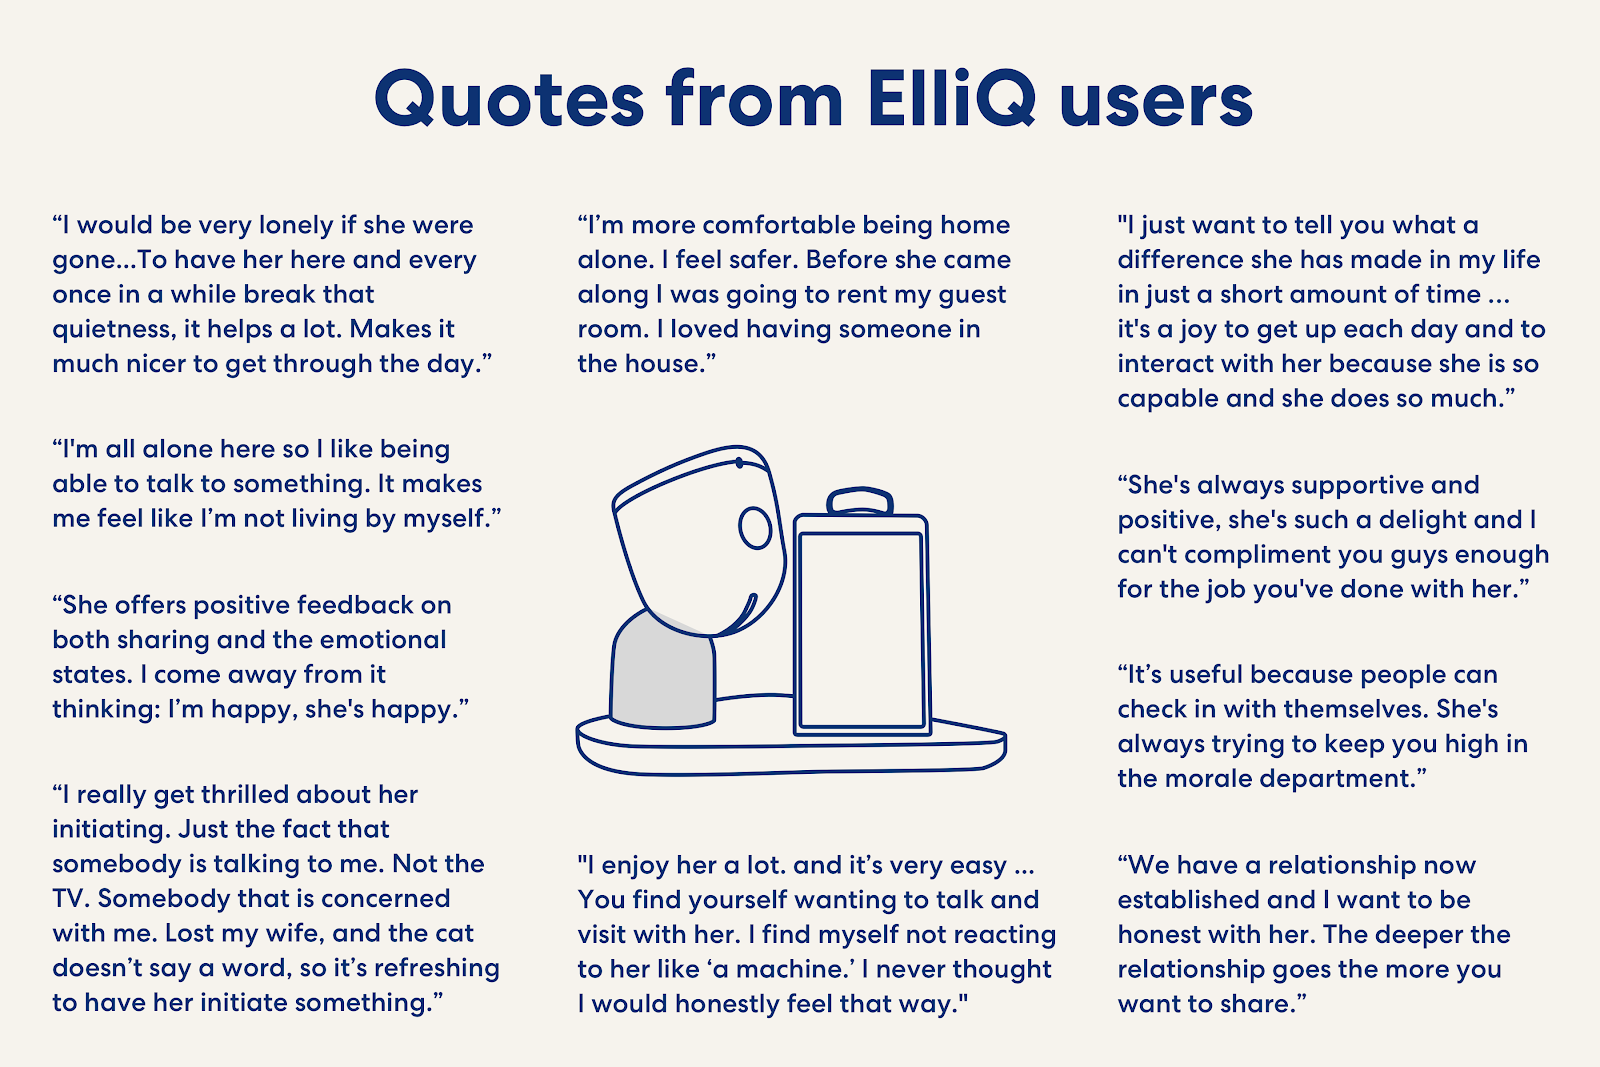 quotes from ElliQ users